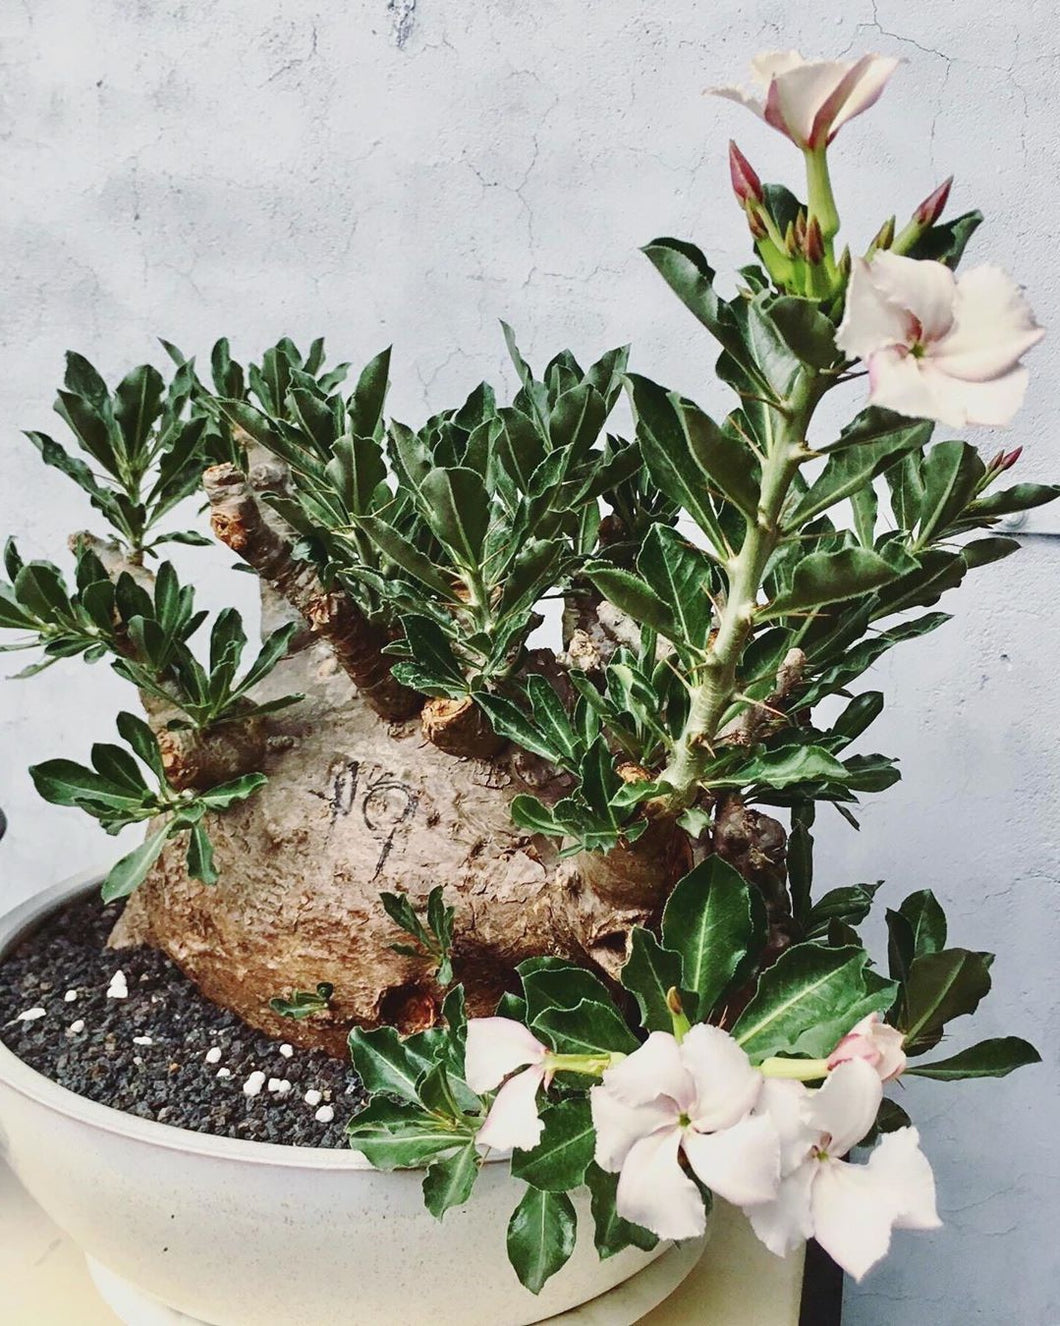 Pachypodium saundersii LIVE PLANT #0554 For Sale